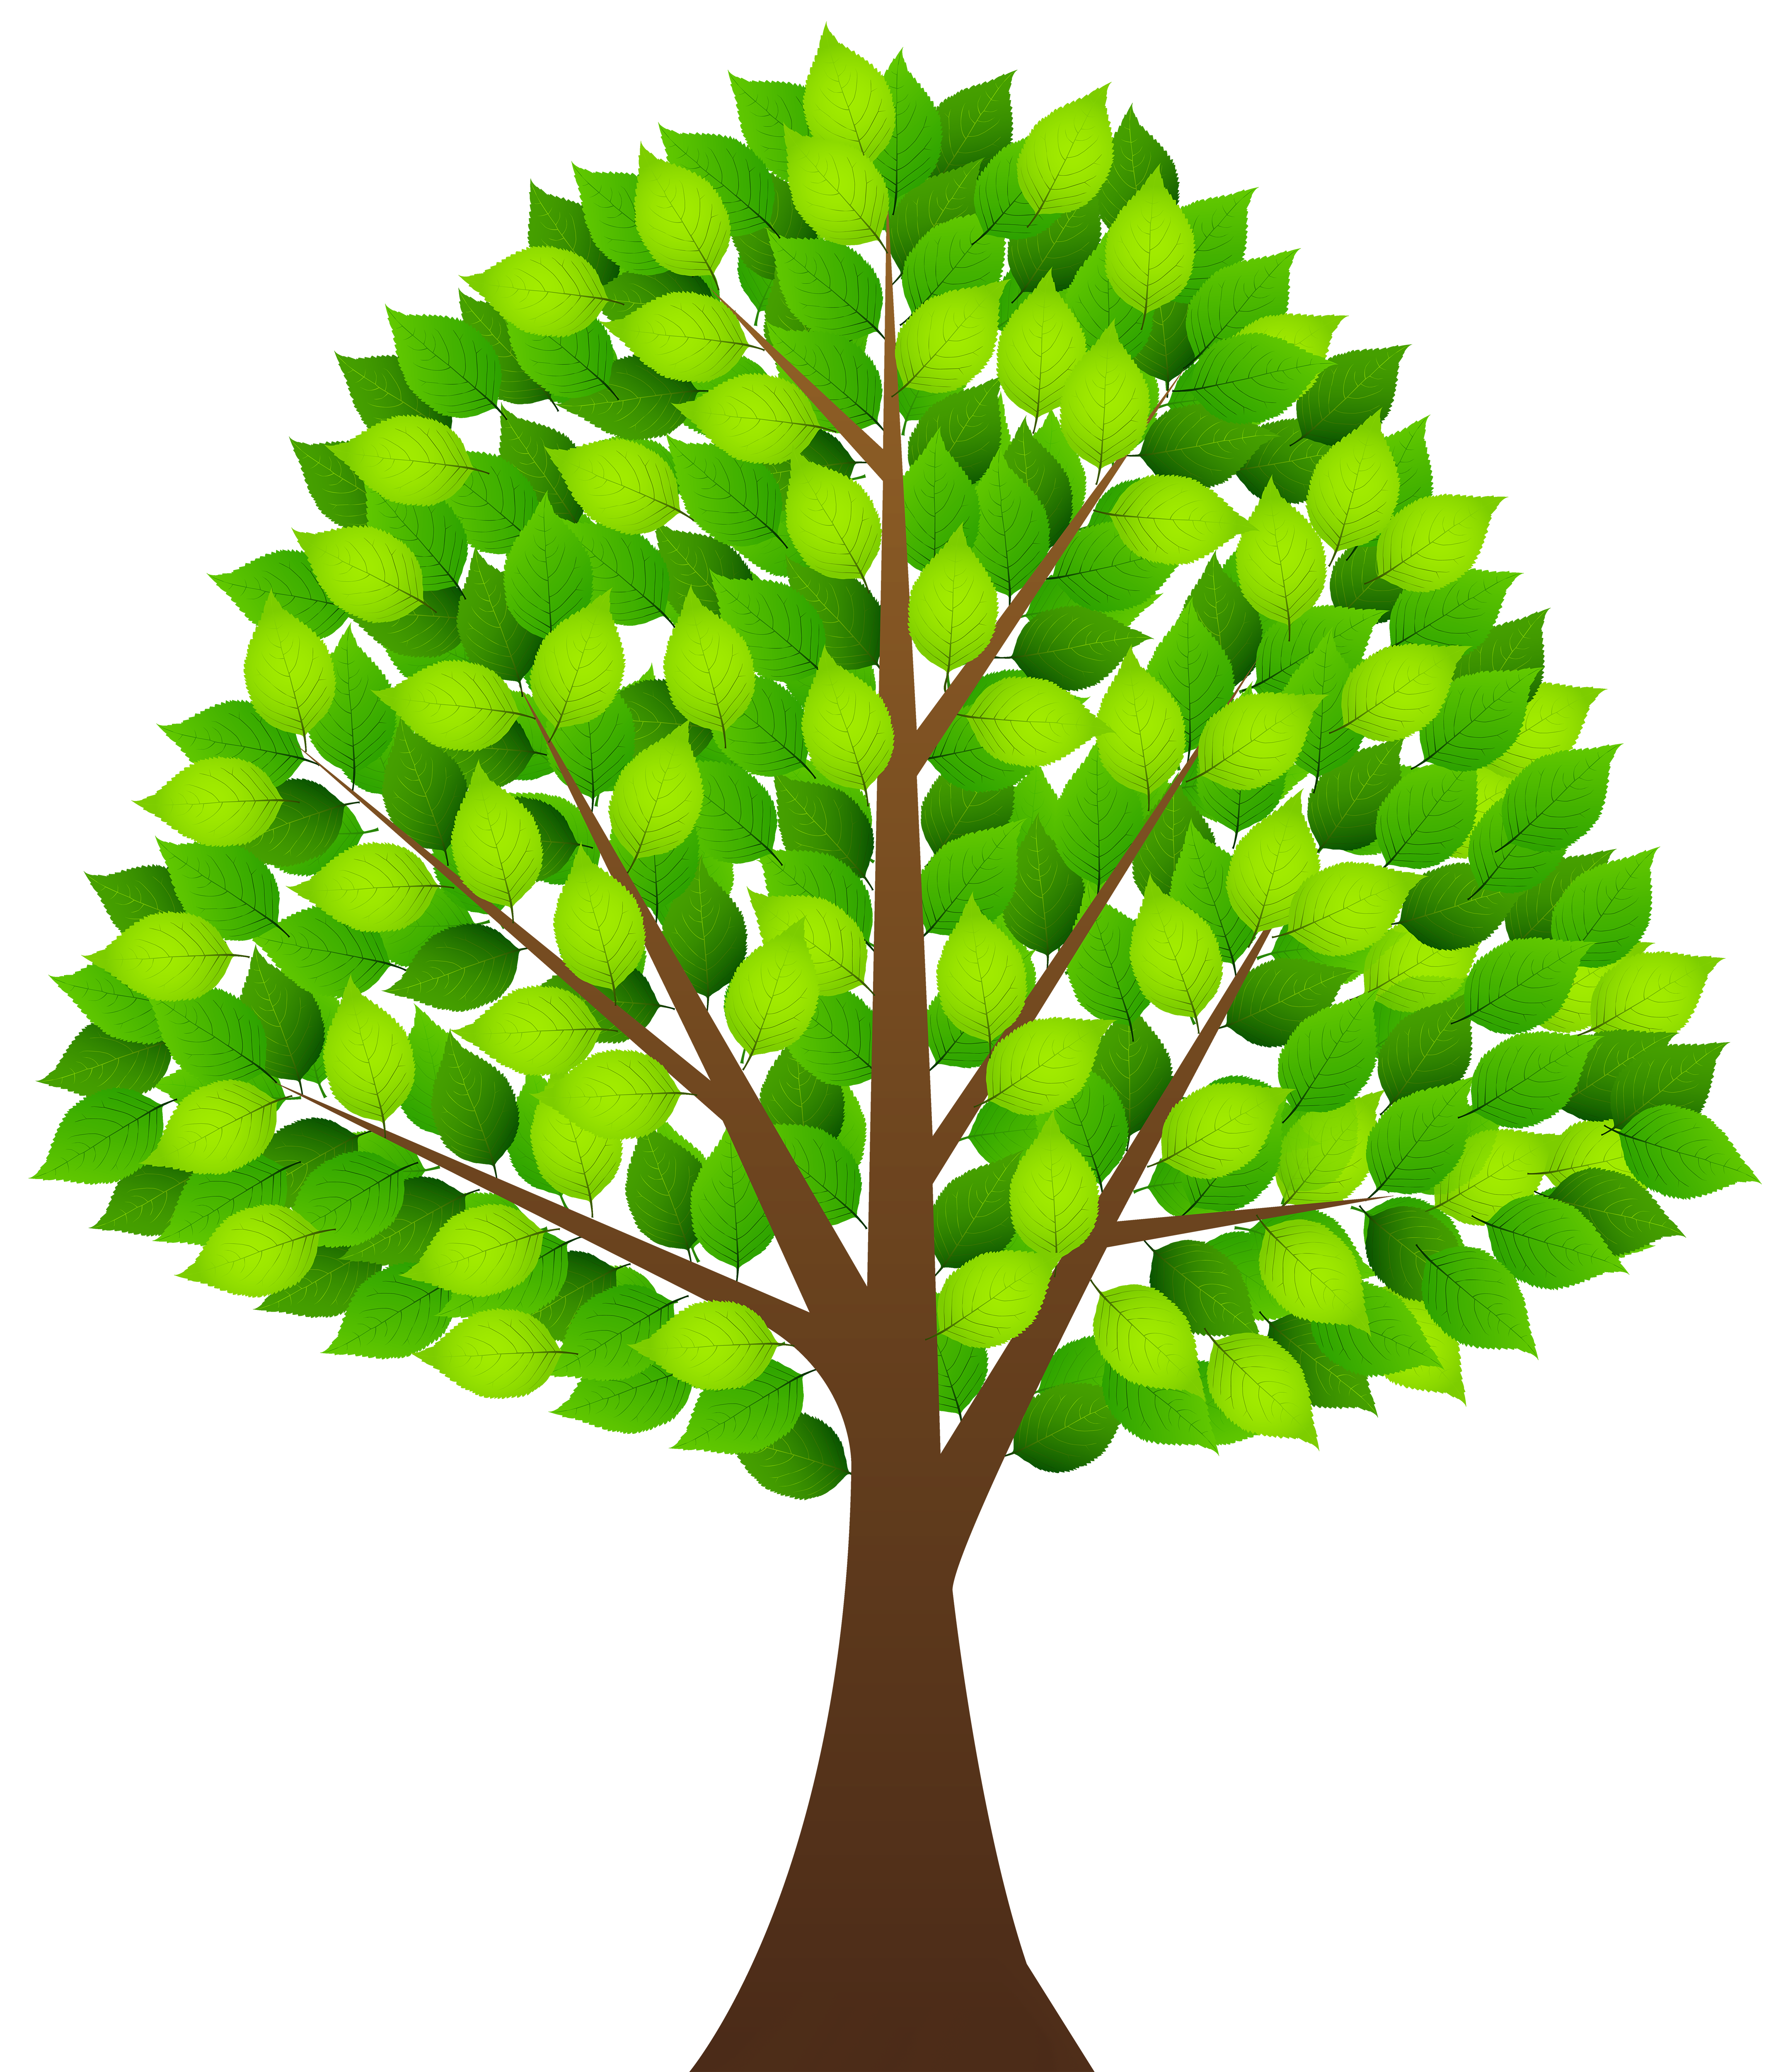 Free Transparent Tree Cliparts, Download Free Clip Art, Free.